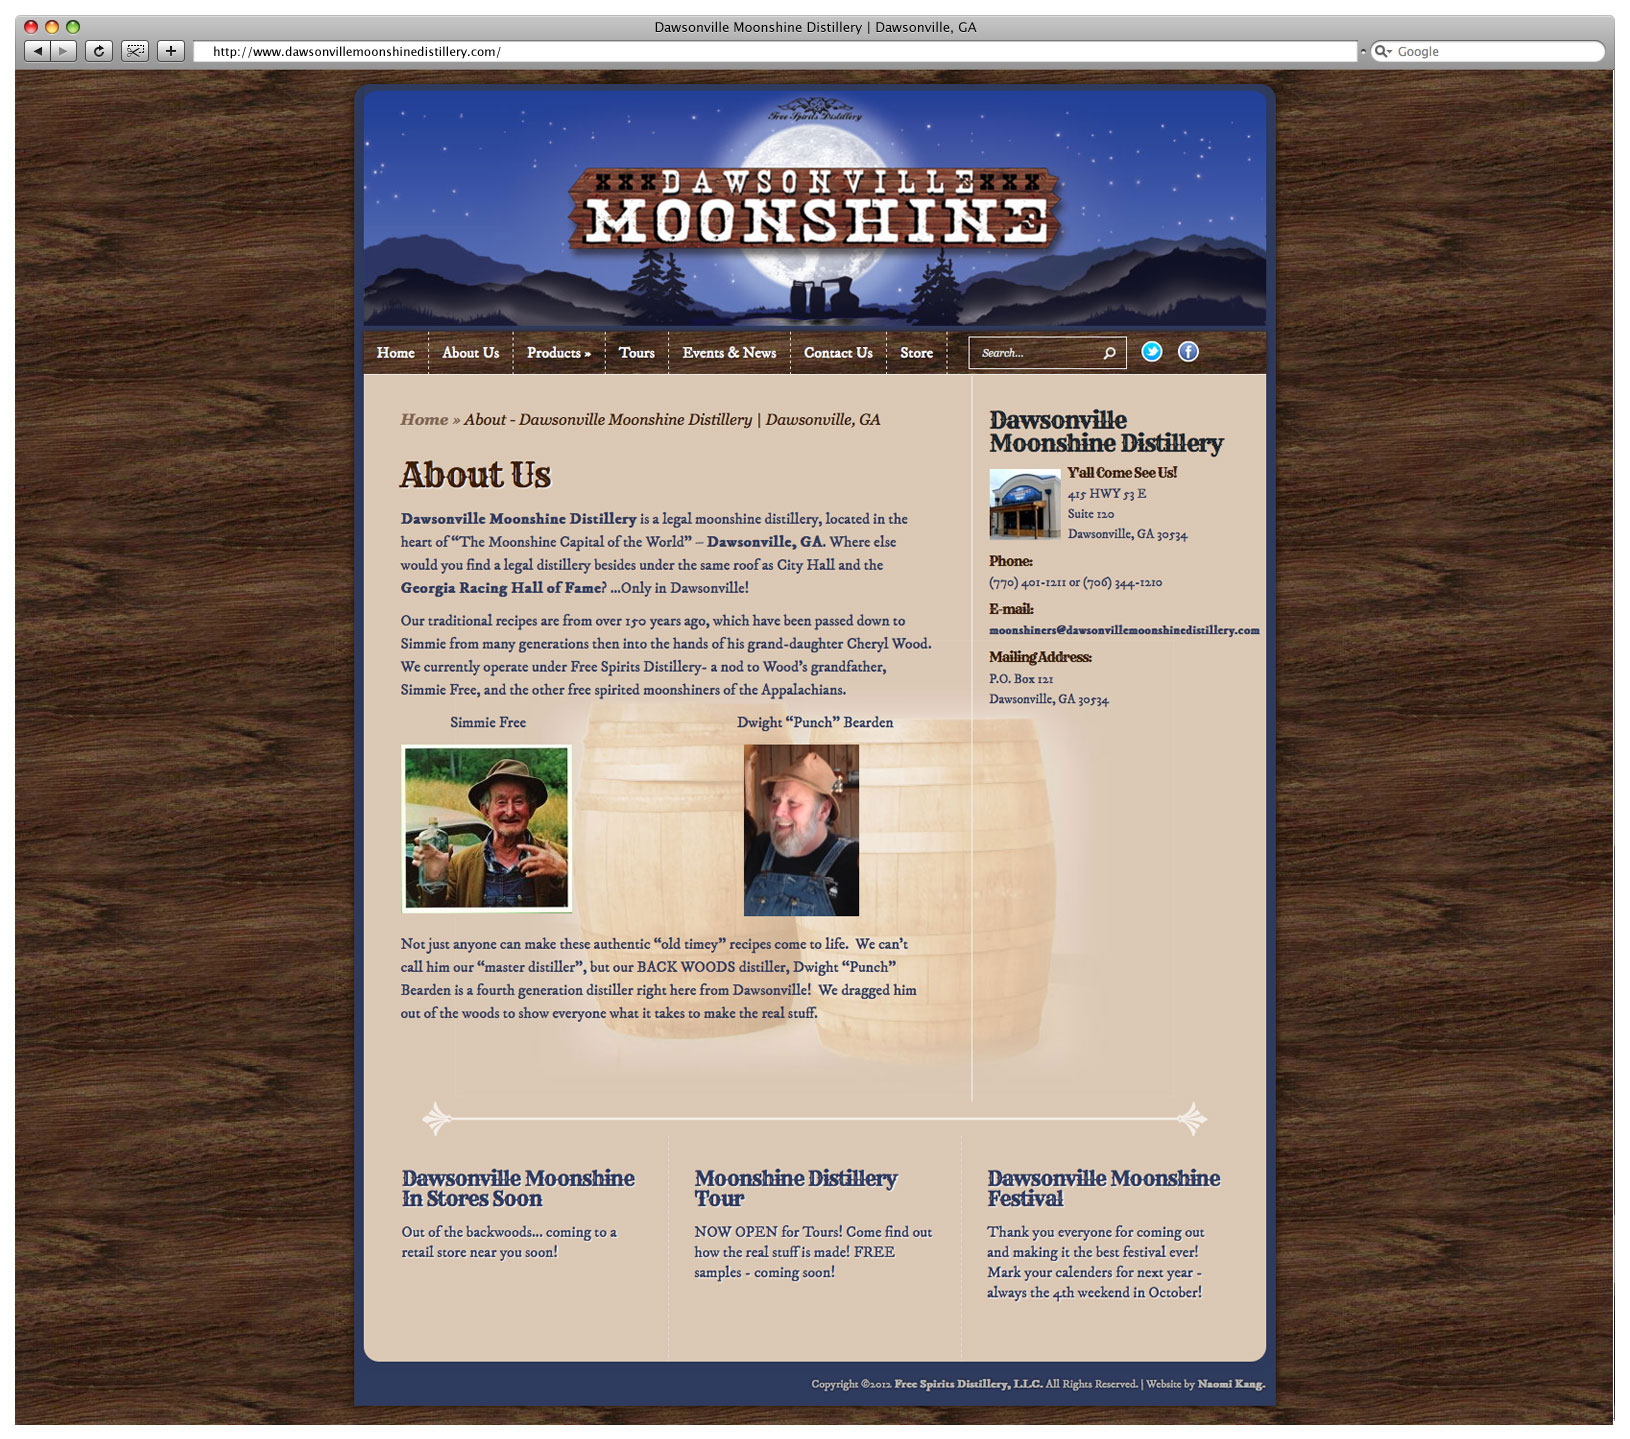 Dawsonville Moonshine Distillery Website – About Page